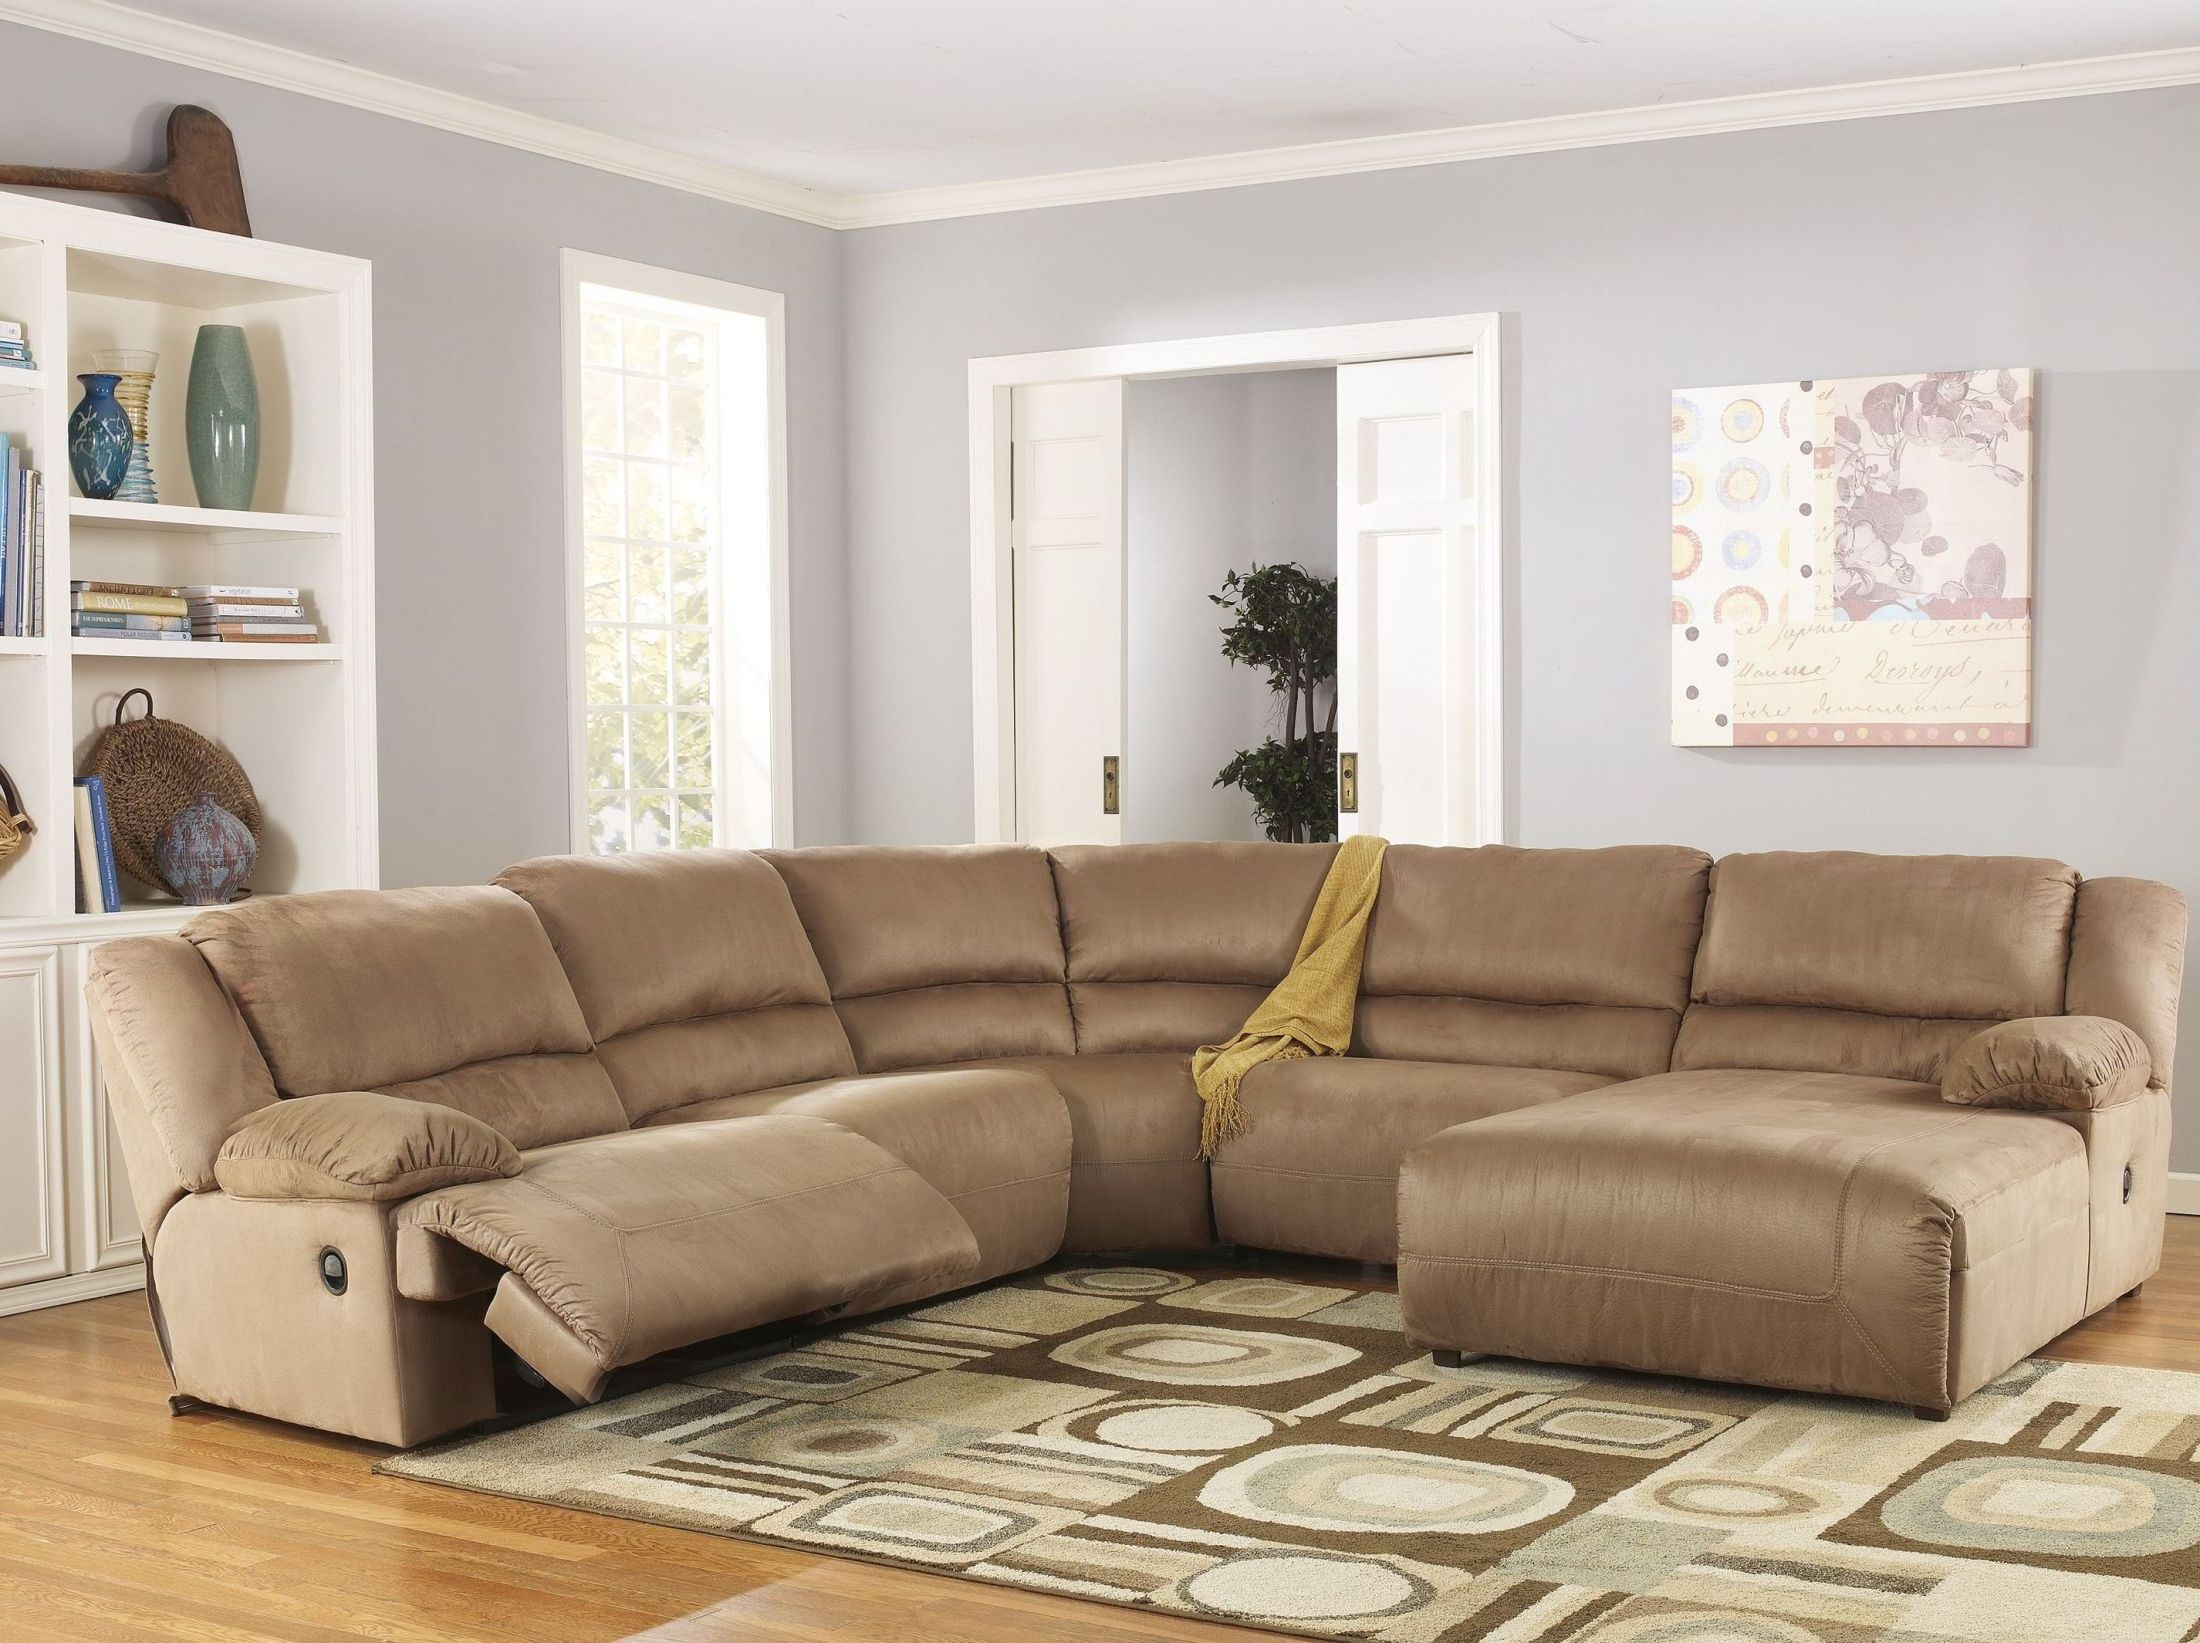 Hogan mocha right chaise reclining sectional from ashley for Ashley furniture hogan chaise